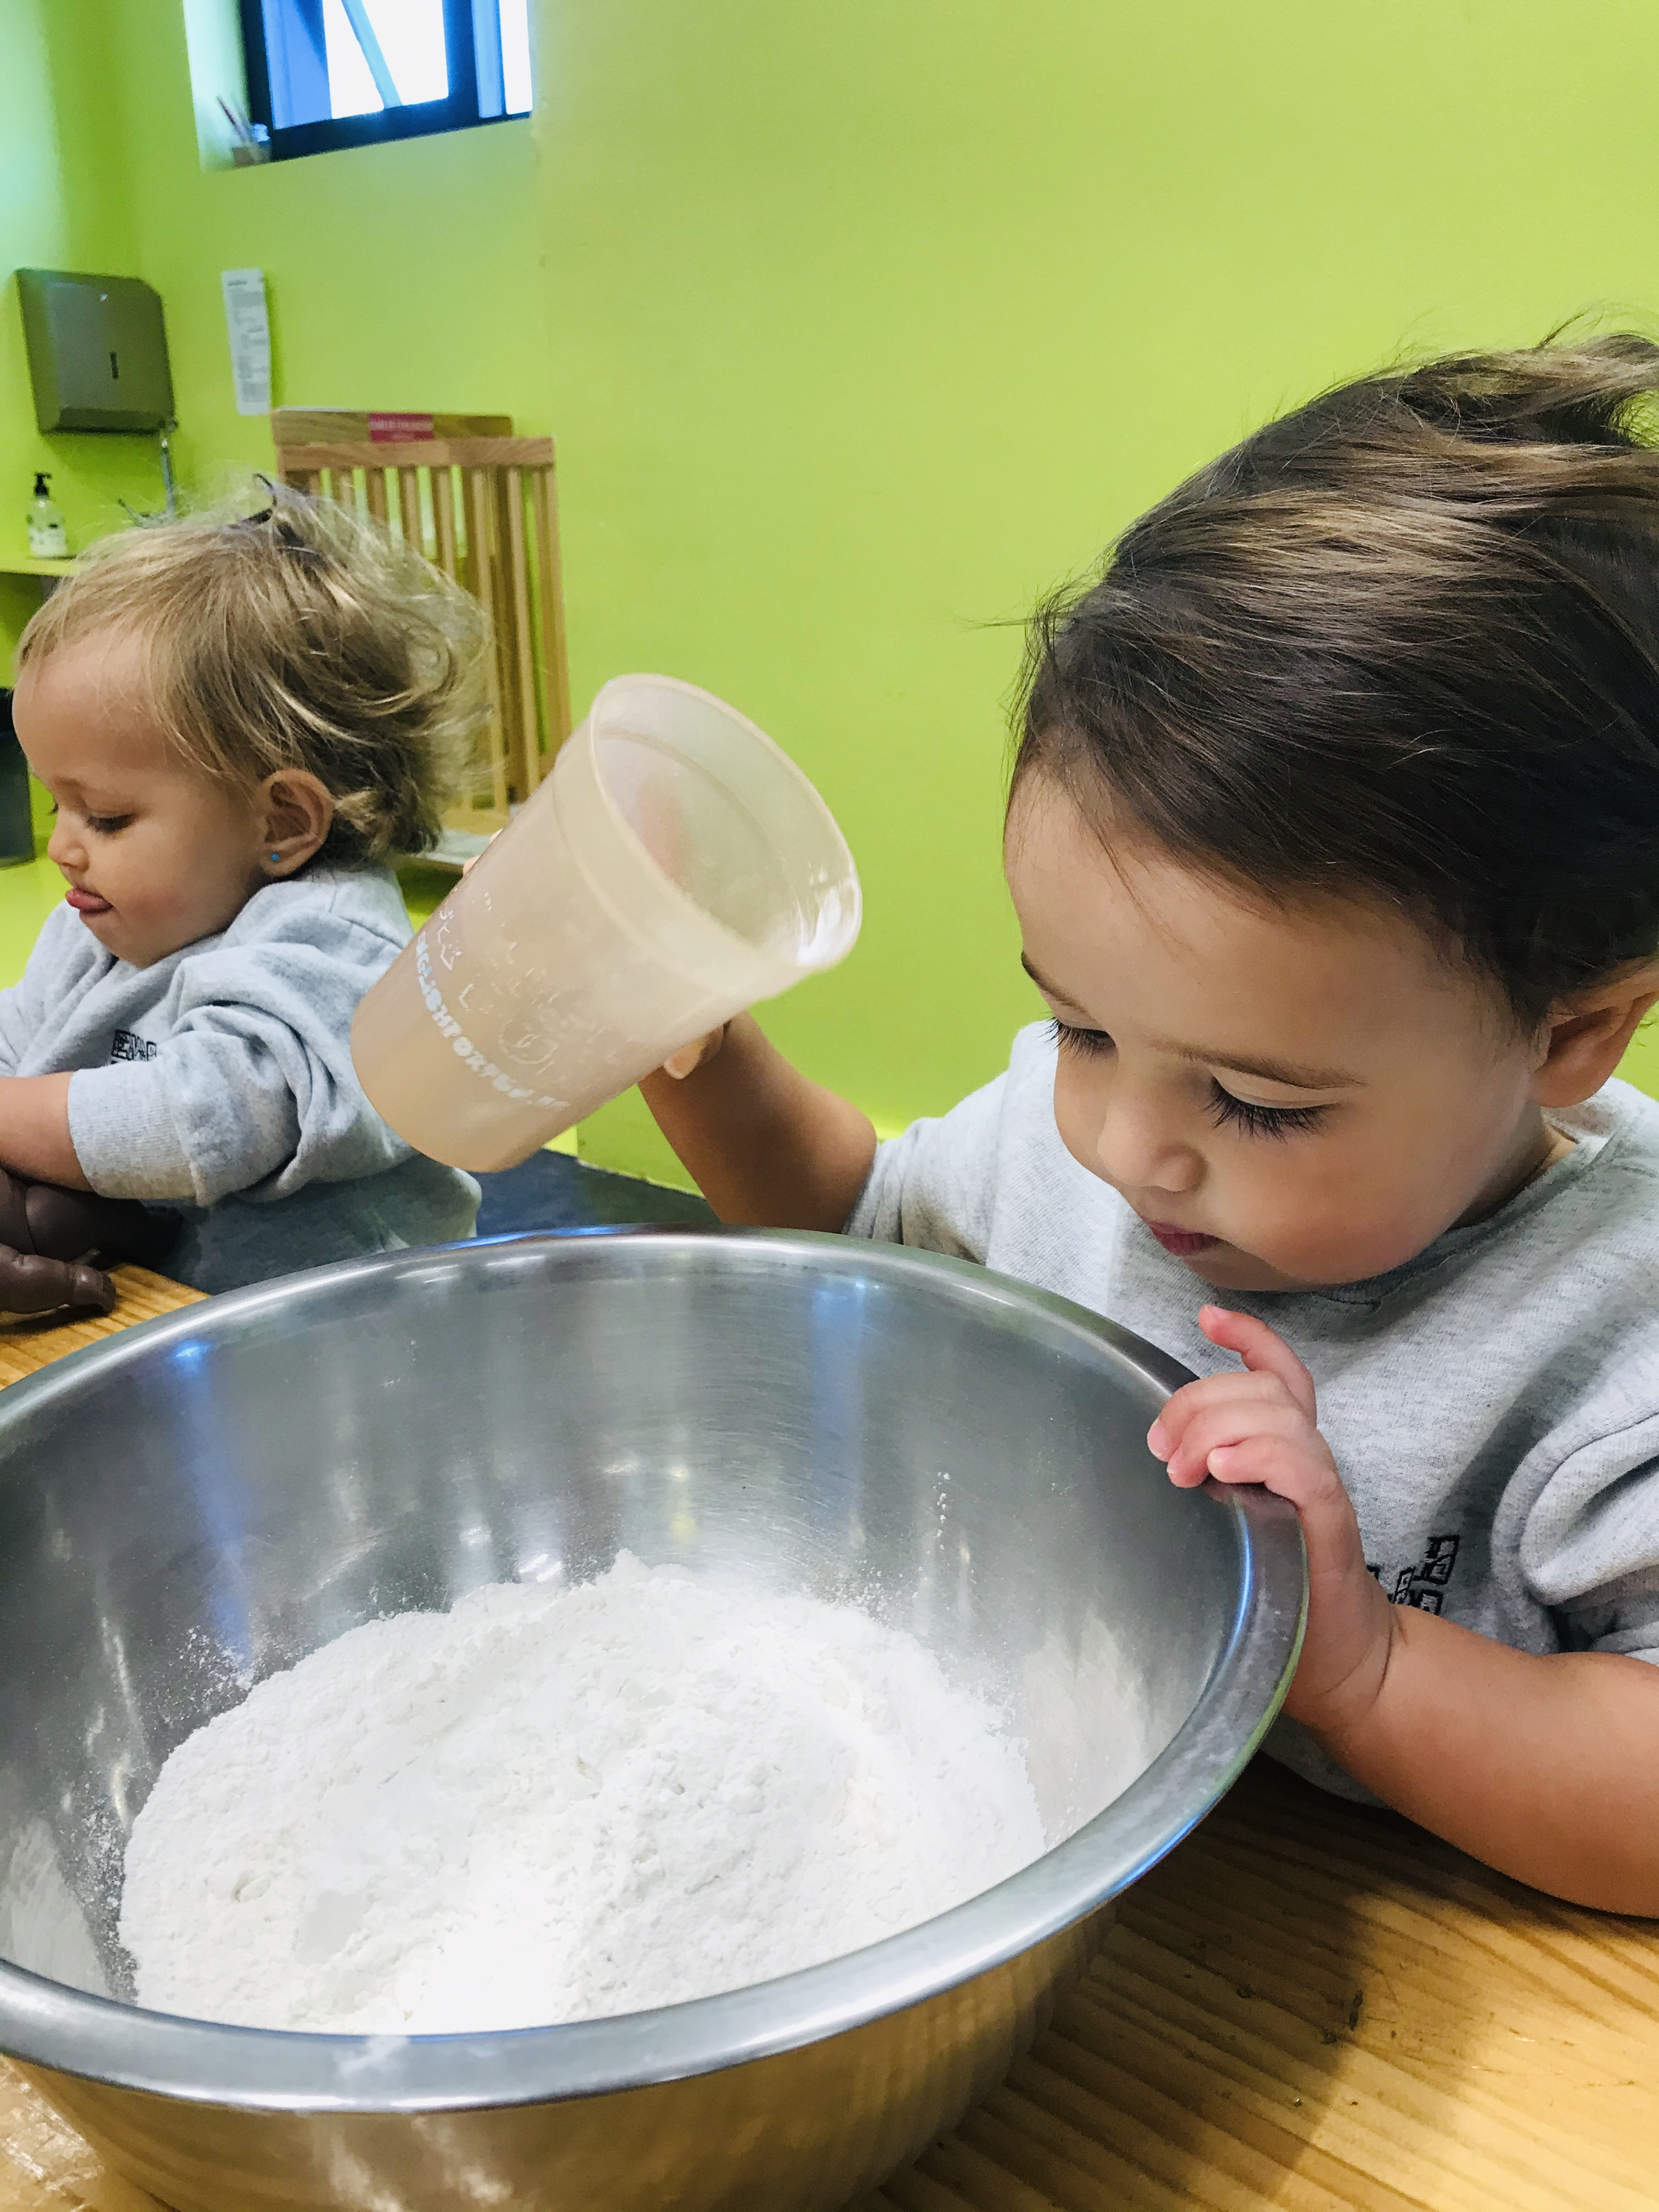 Children feel empowered when they pour the ingredients and make them into something that they can eat later.